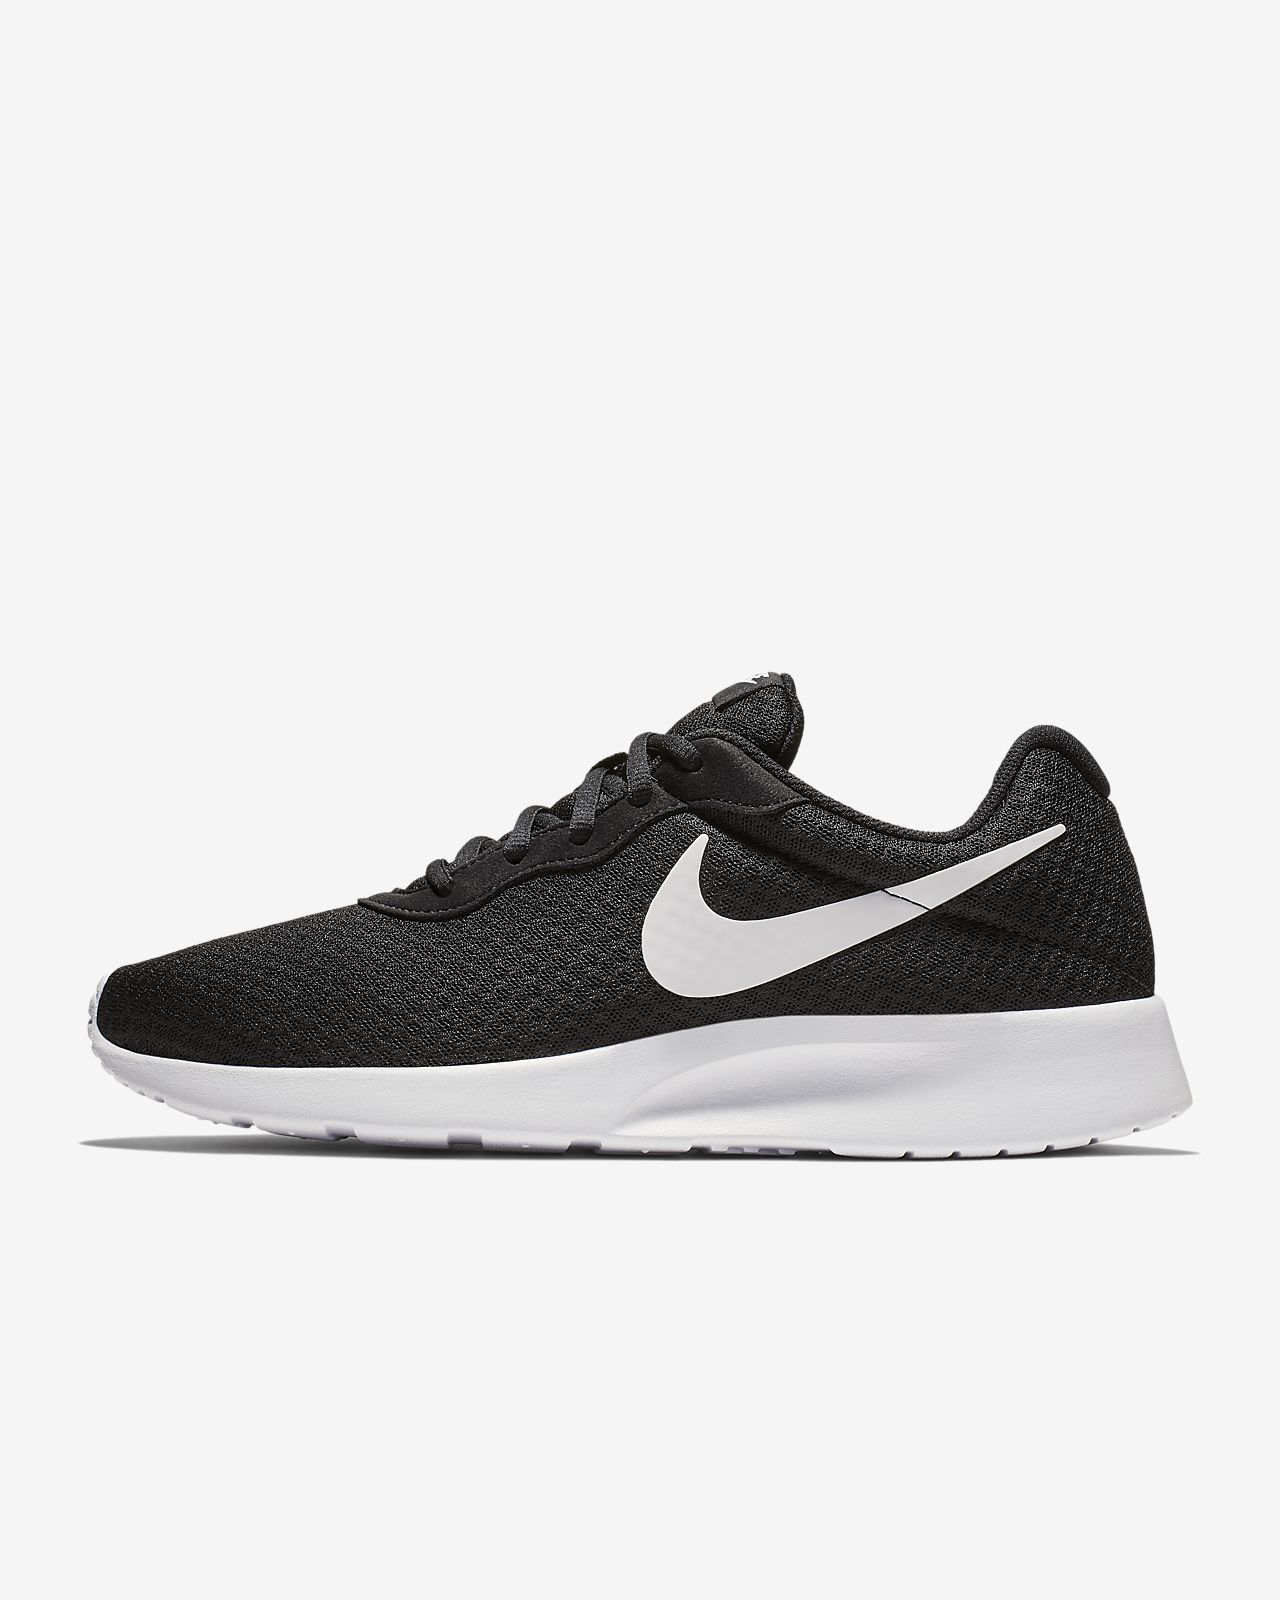 info for 901b8 ca68a Low Resolution Nike Tanjun Womens Shoe Nike Tanjun Womens Shoe